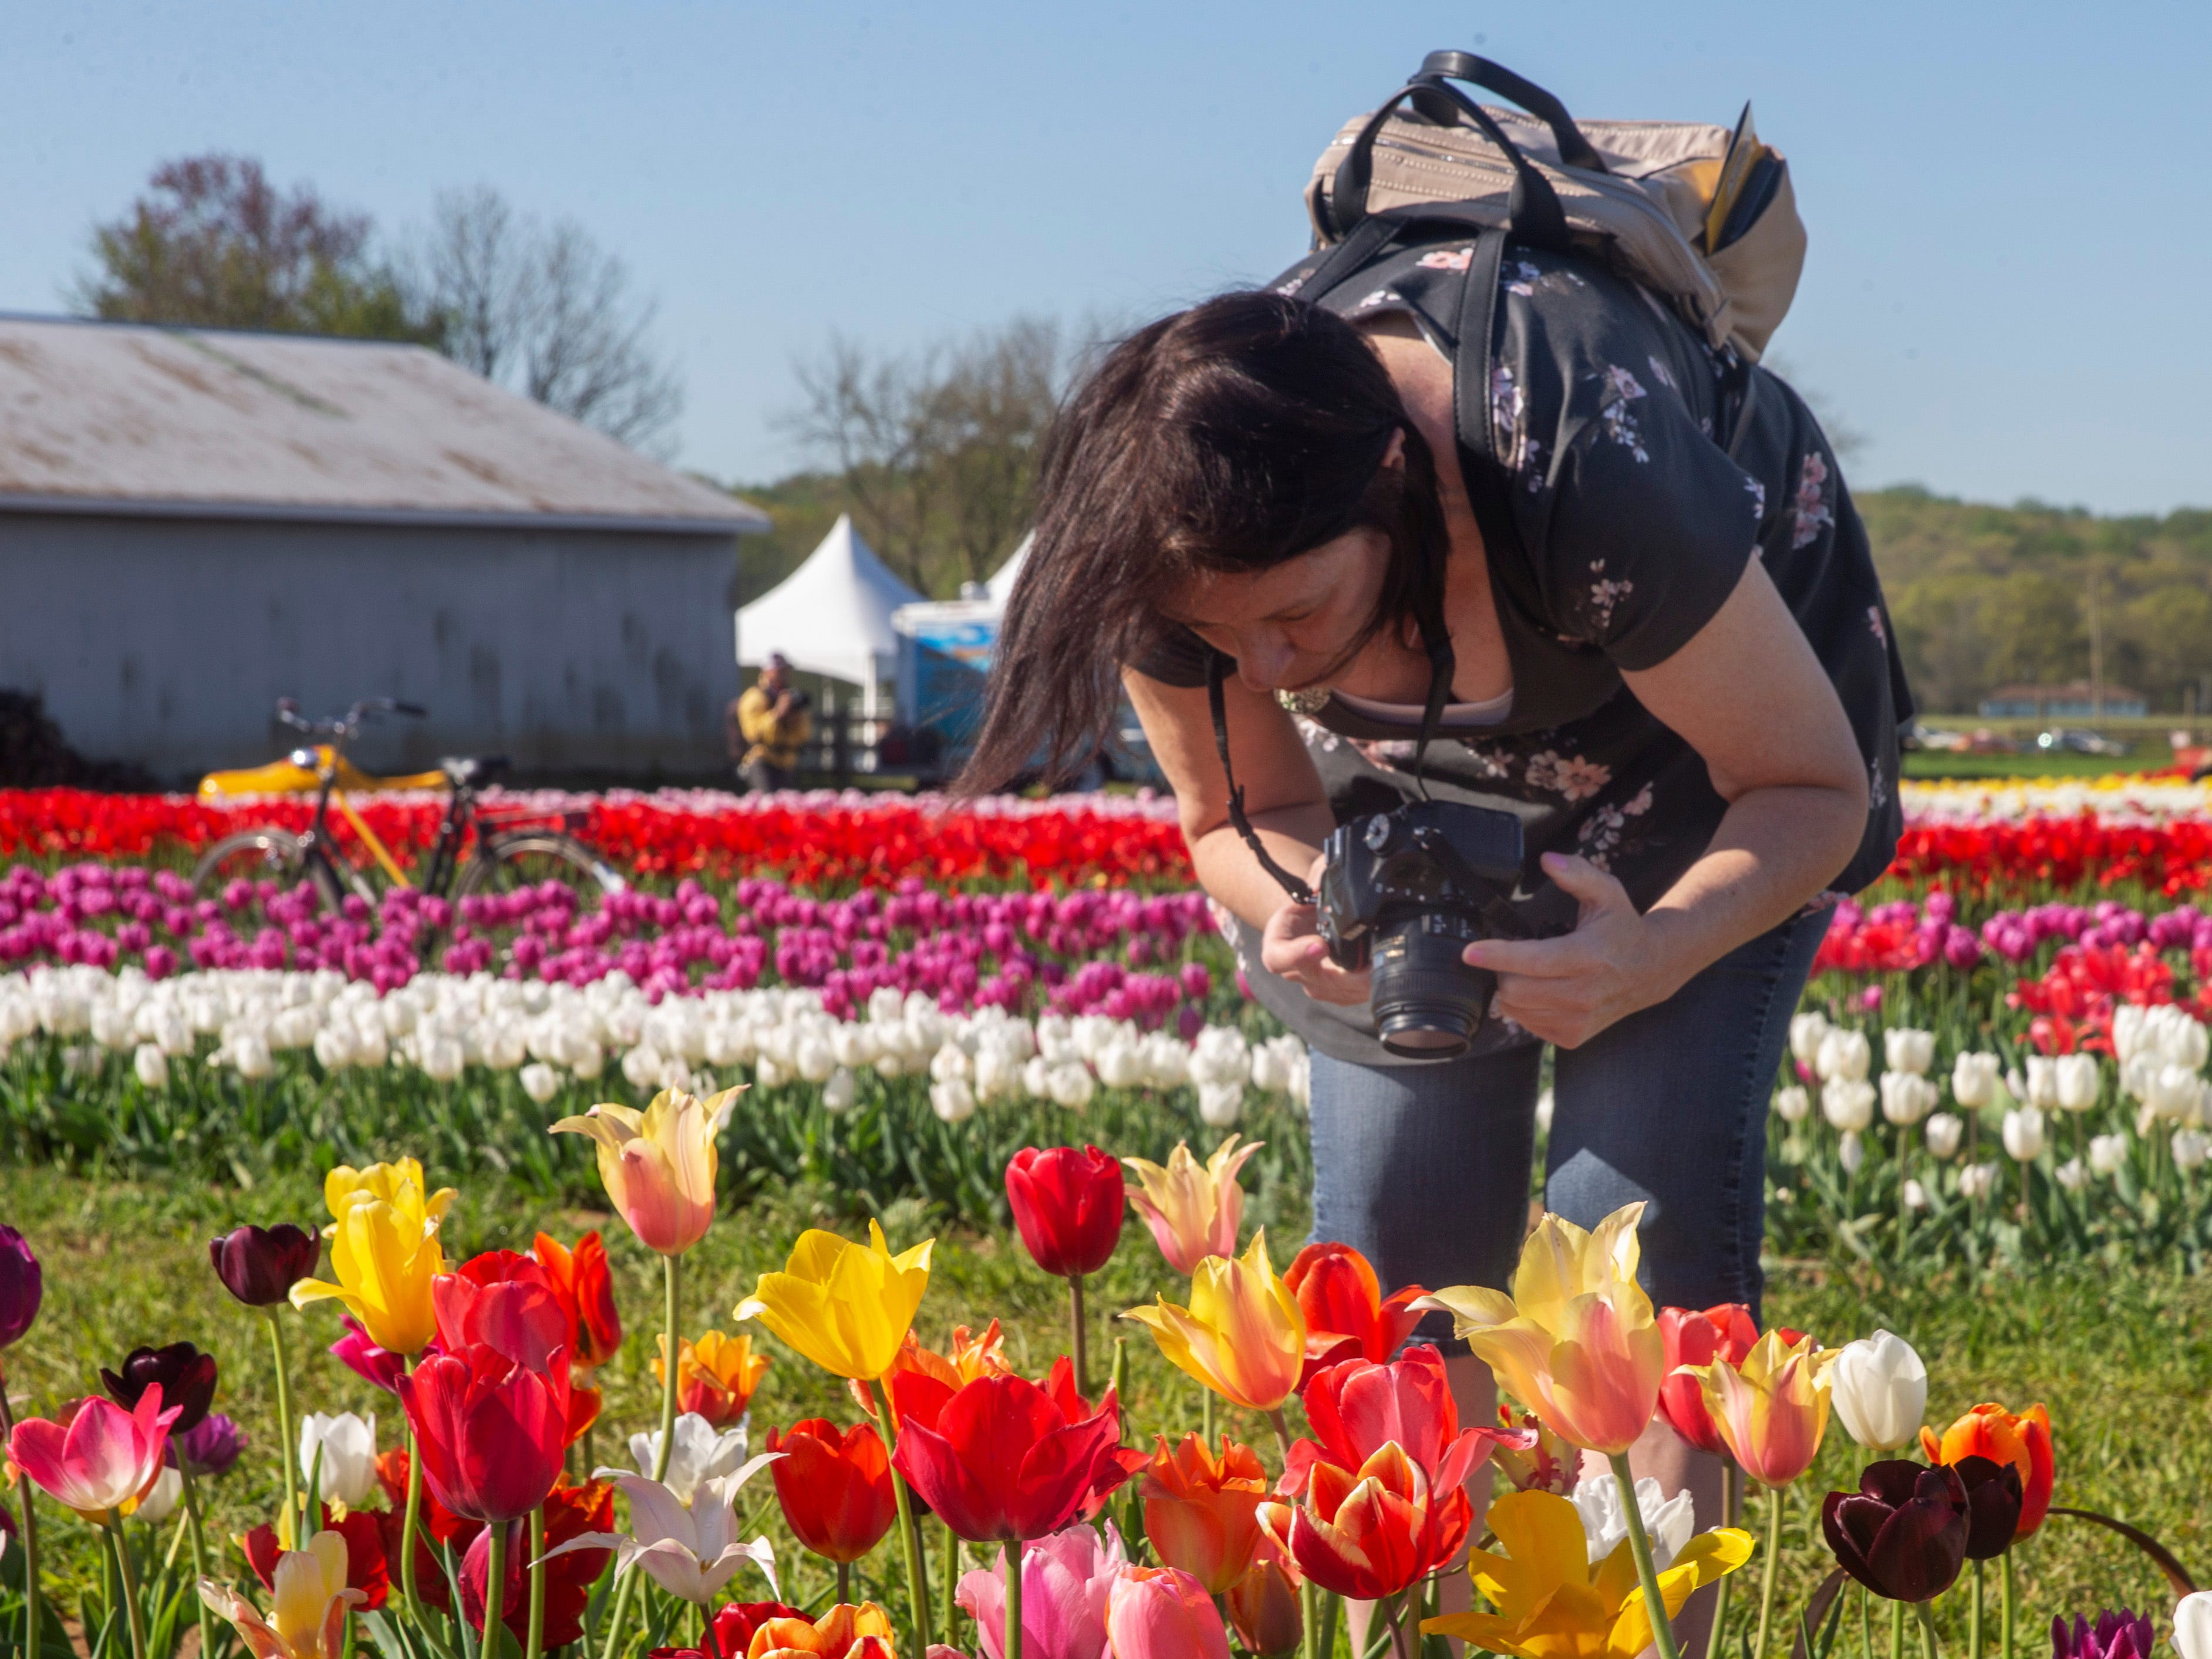 Vicky Mcerlean of Manahawkin photographs the tulips during visit to the annual Tulip Festival at Holland Ridge Farms in Cream Ridge Section of Upper Freehold Township. People came from all around to look at the flowers, take pictures of the flowers, and take pictures of themselves with the flowers.